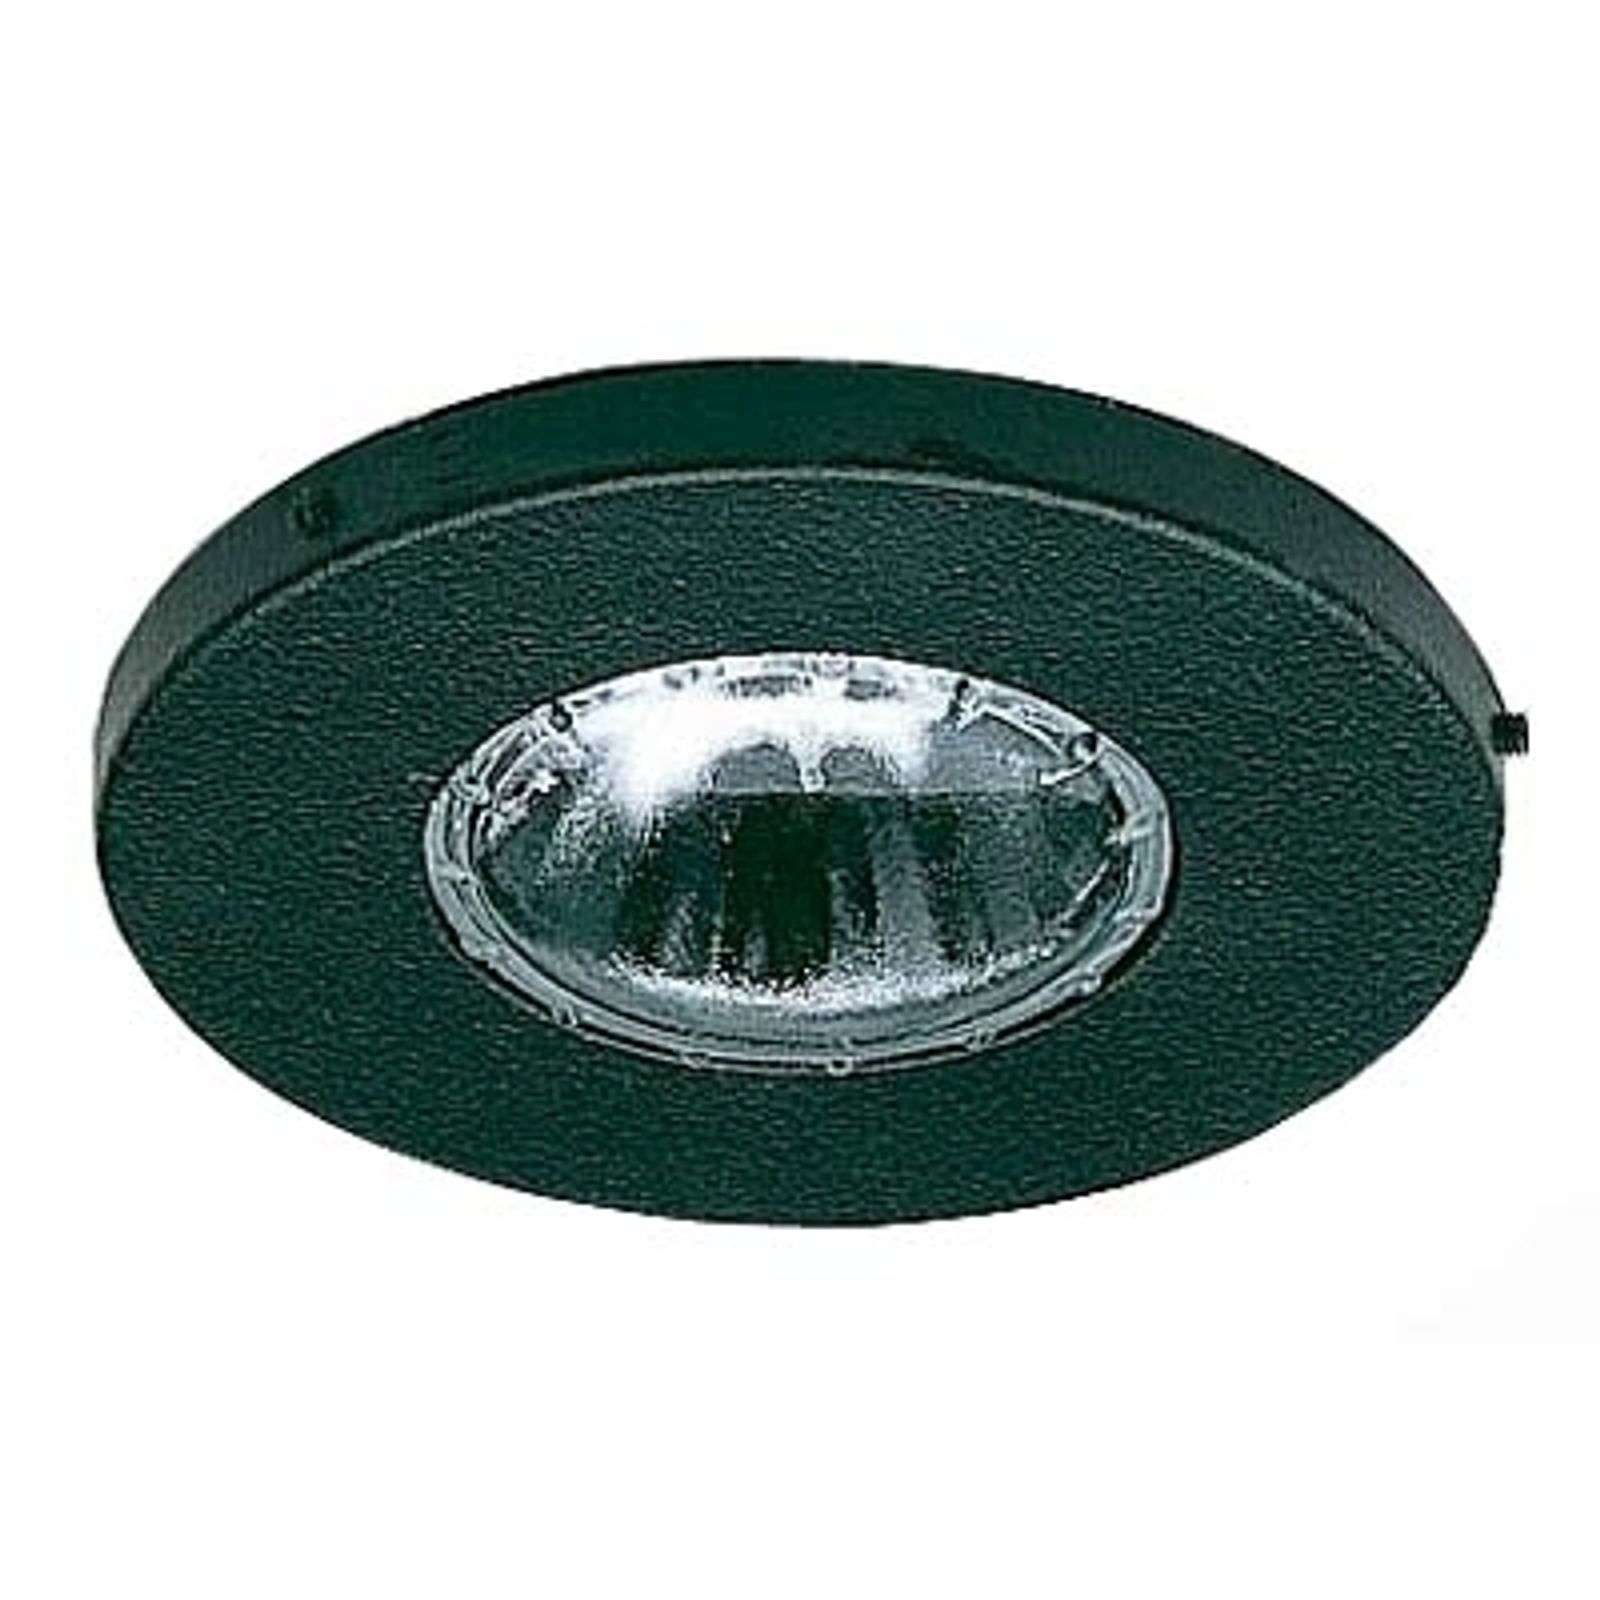 Orio outdoor recessed ceiling spotlight in black